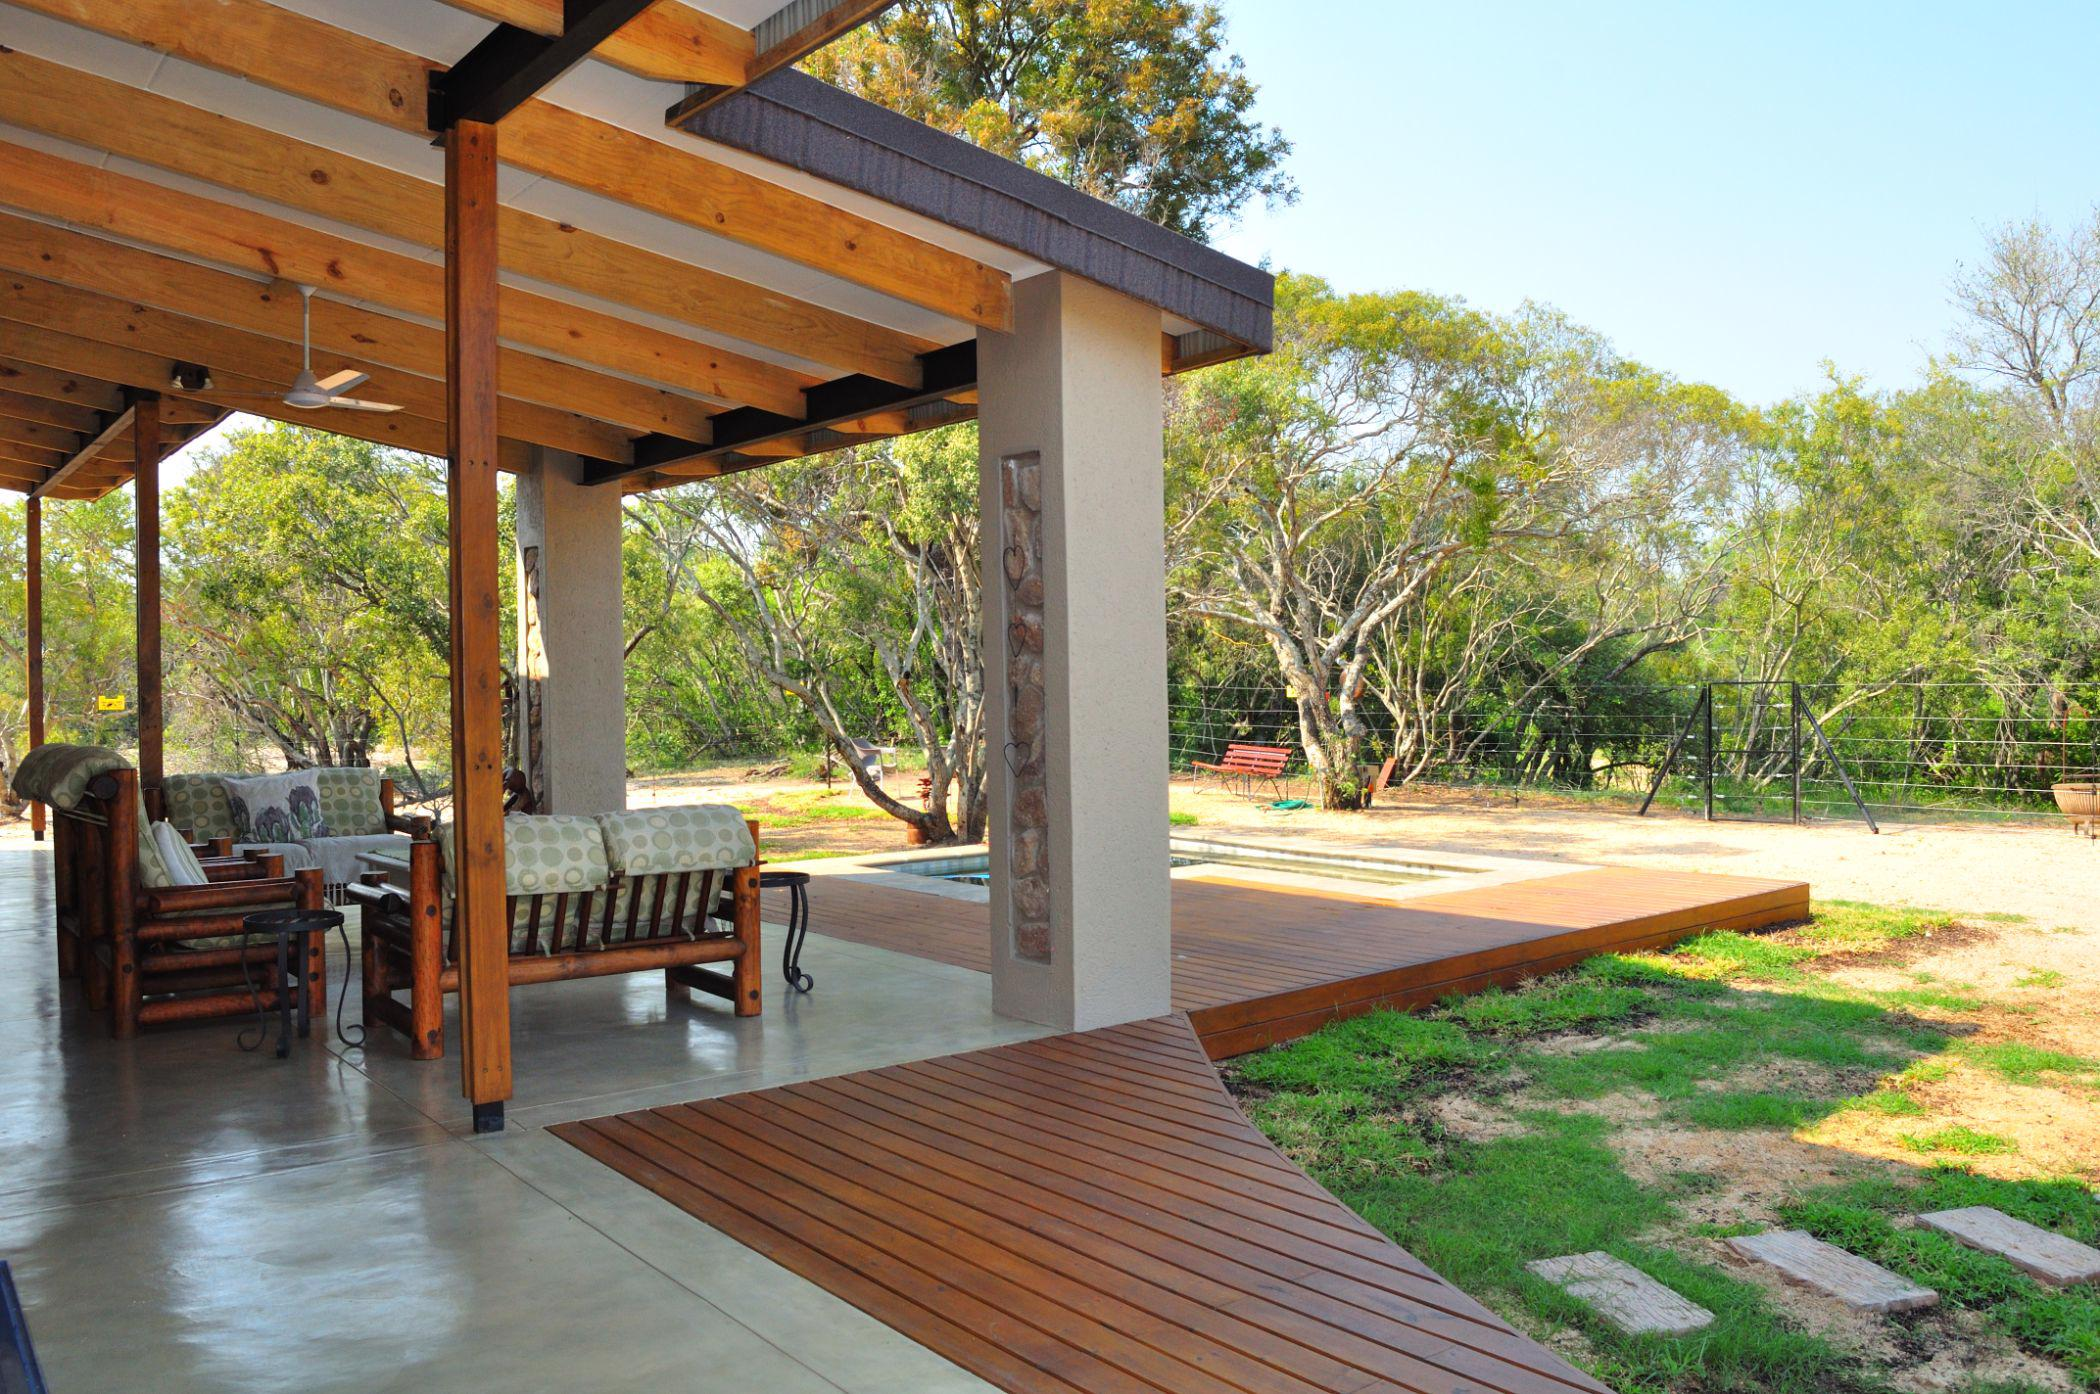 3 bedroom house for sale in Moditlo Nature Reserve